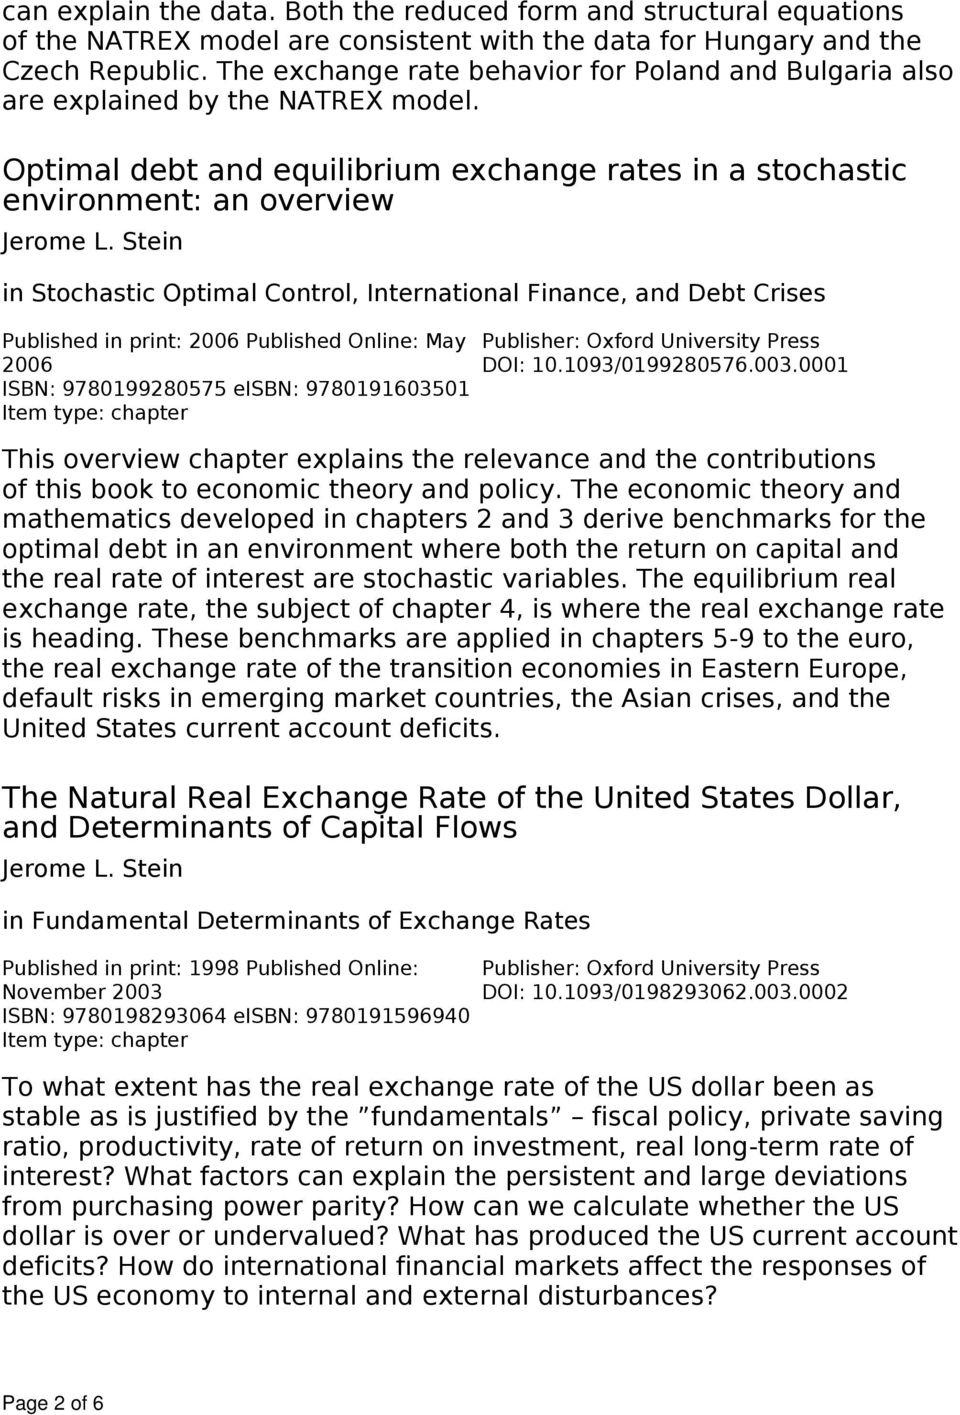 Optimal debt and equilibrium exchange rates in a stochastic environment: an overview in Stochastic Optimal Control, International Finance, and Debt Crises Published in print: 2006 Published Online: